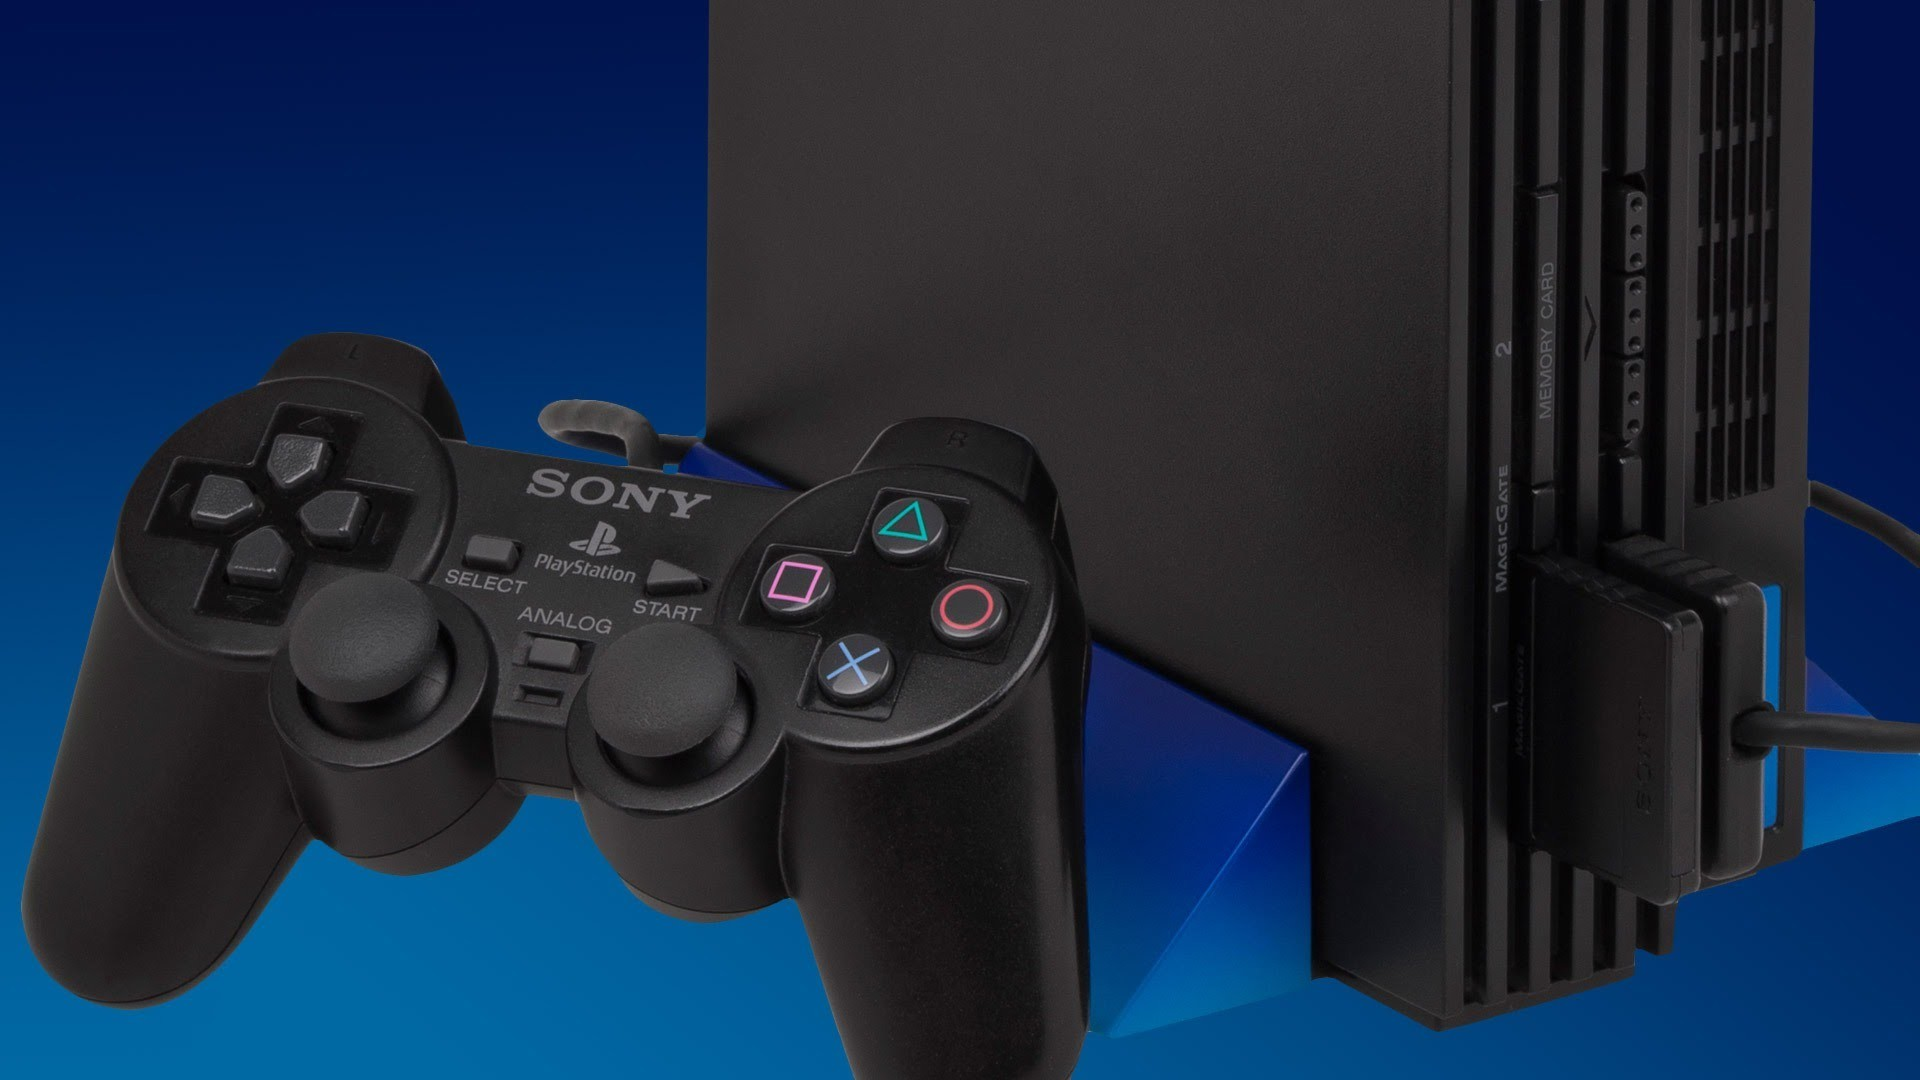 1920x1080 Why the PlayStation 2 is the Best-Selling Game Console in History - YouTube